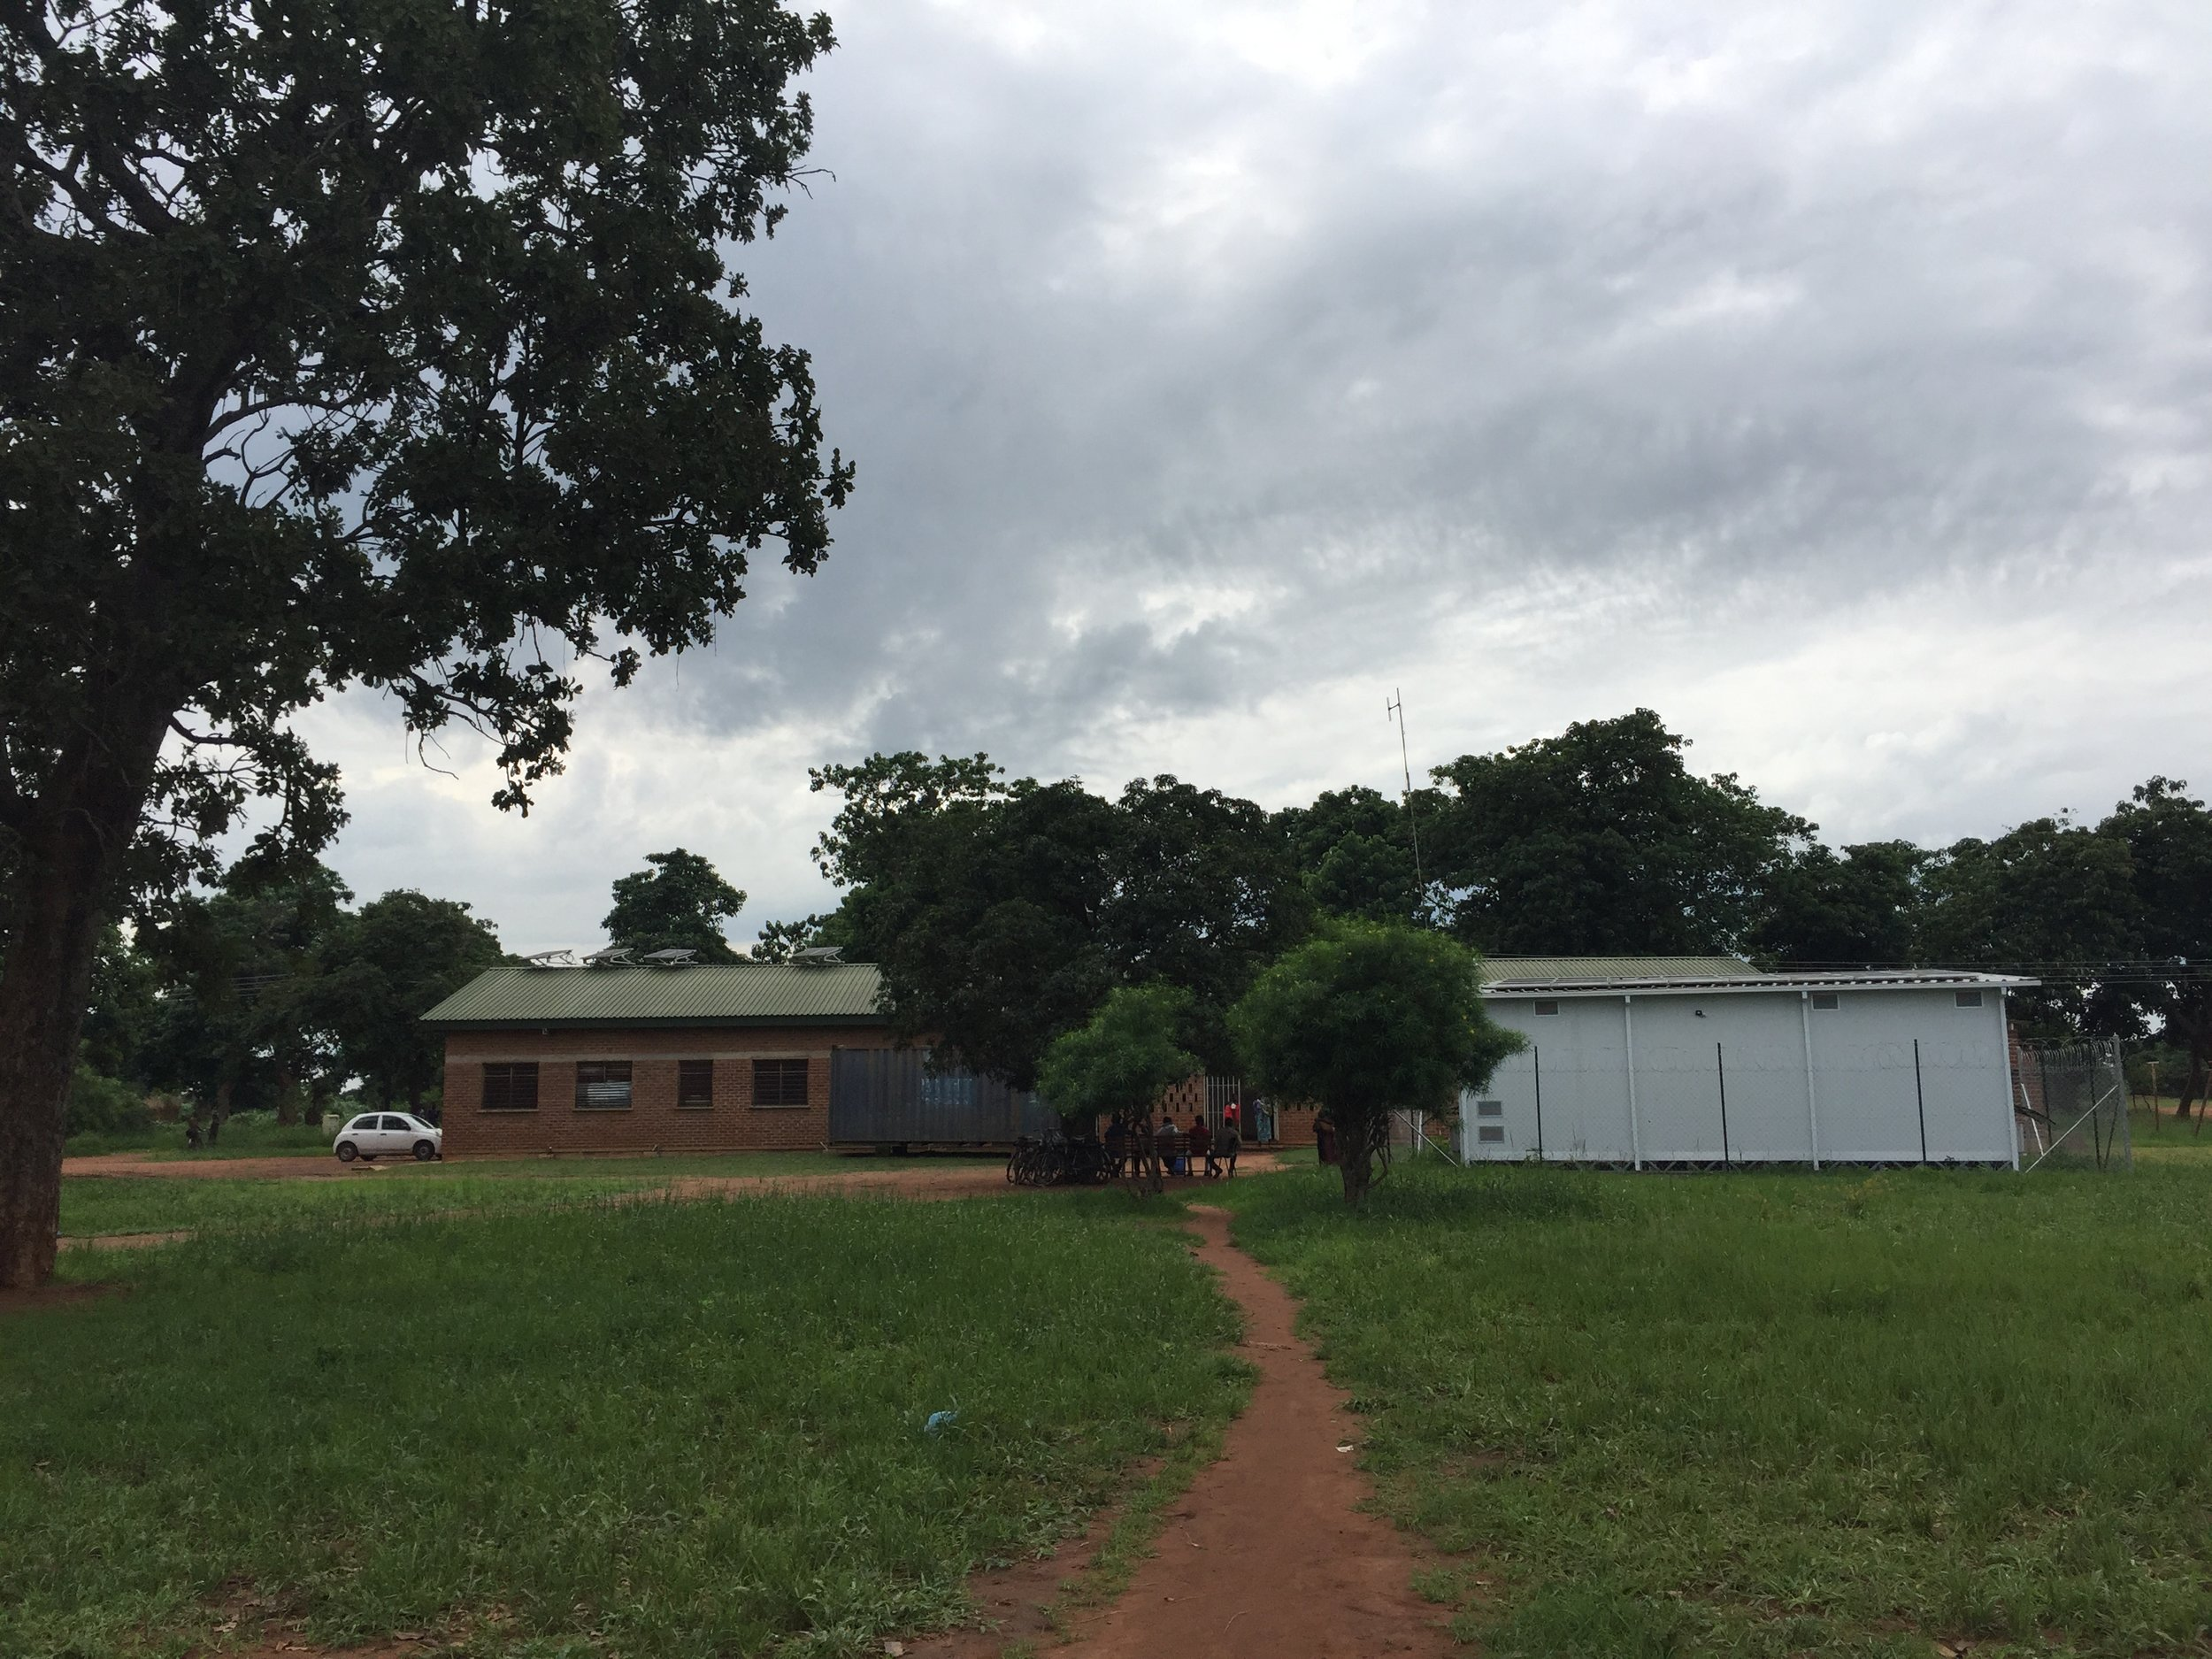 Malembo Rural Health Center (brick building on left) and cold storage pharmacy (white structure on right).